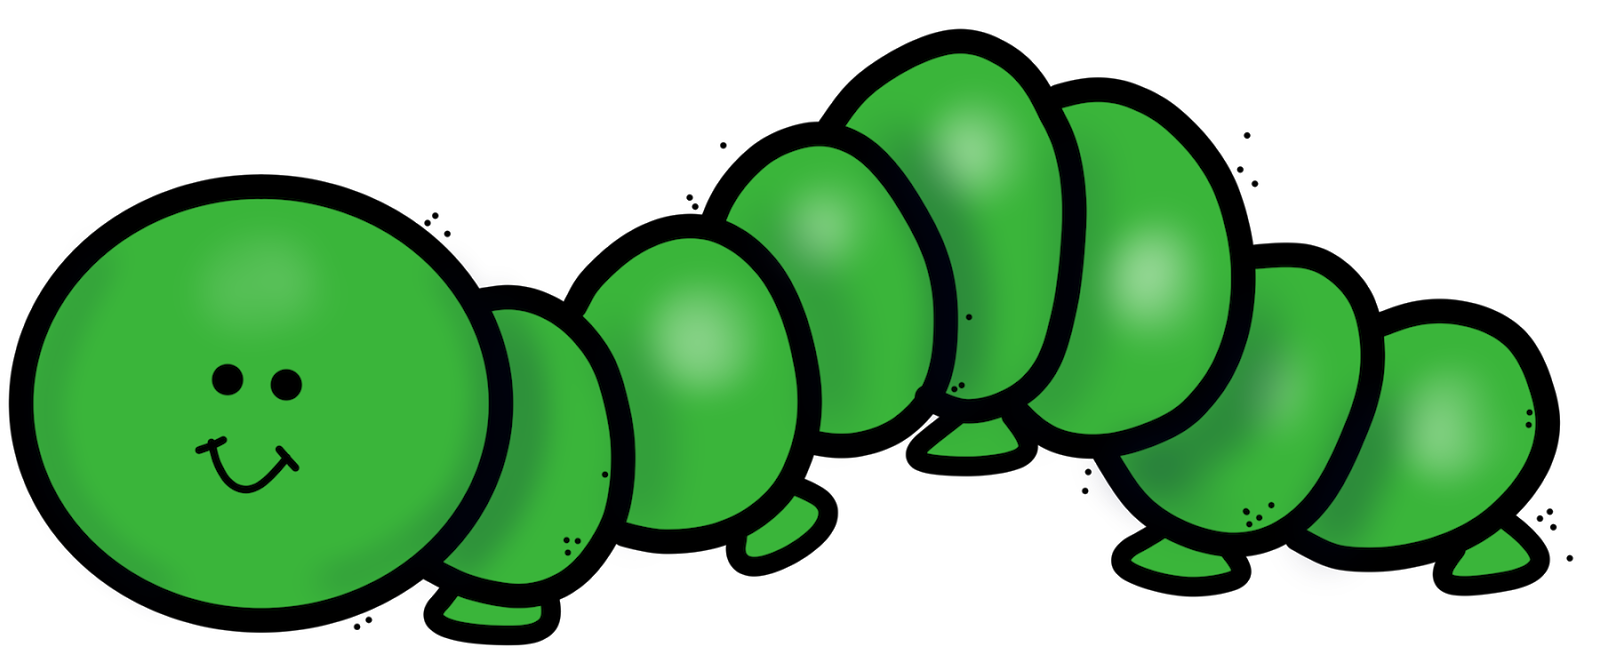 clip freeuse Inchworm clipart. Clip art free on